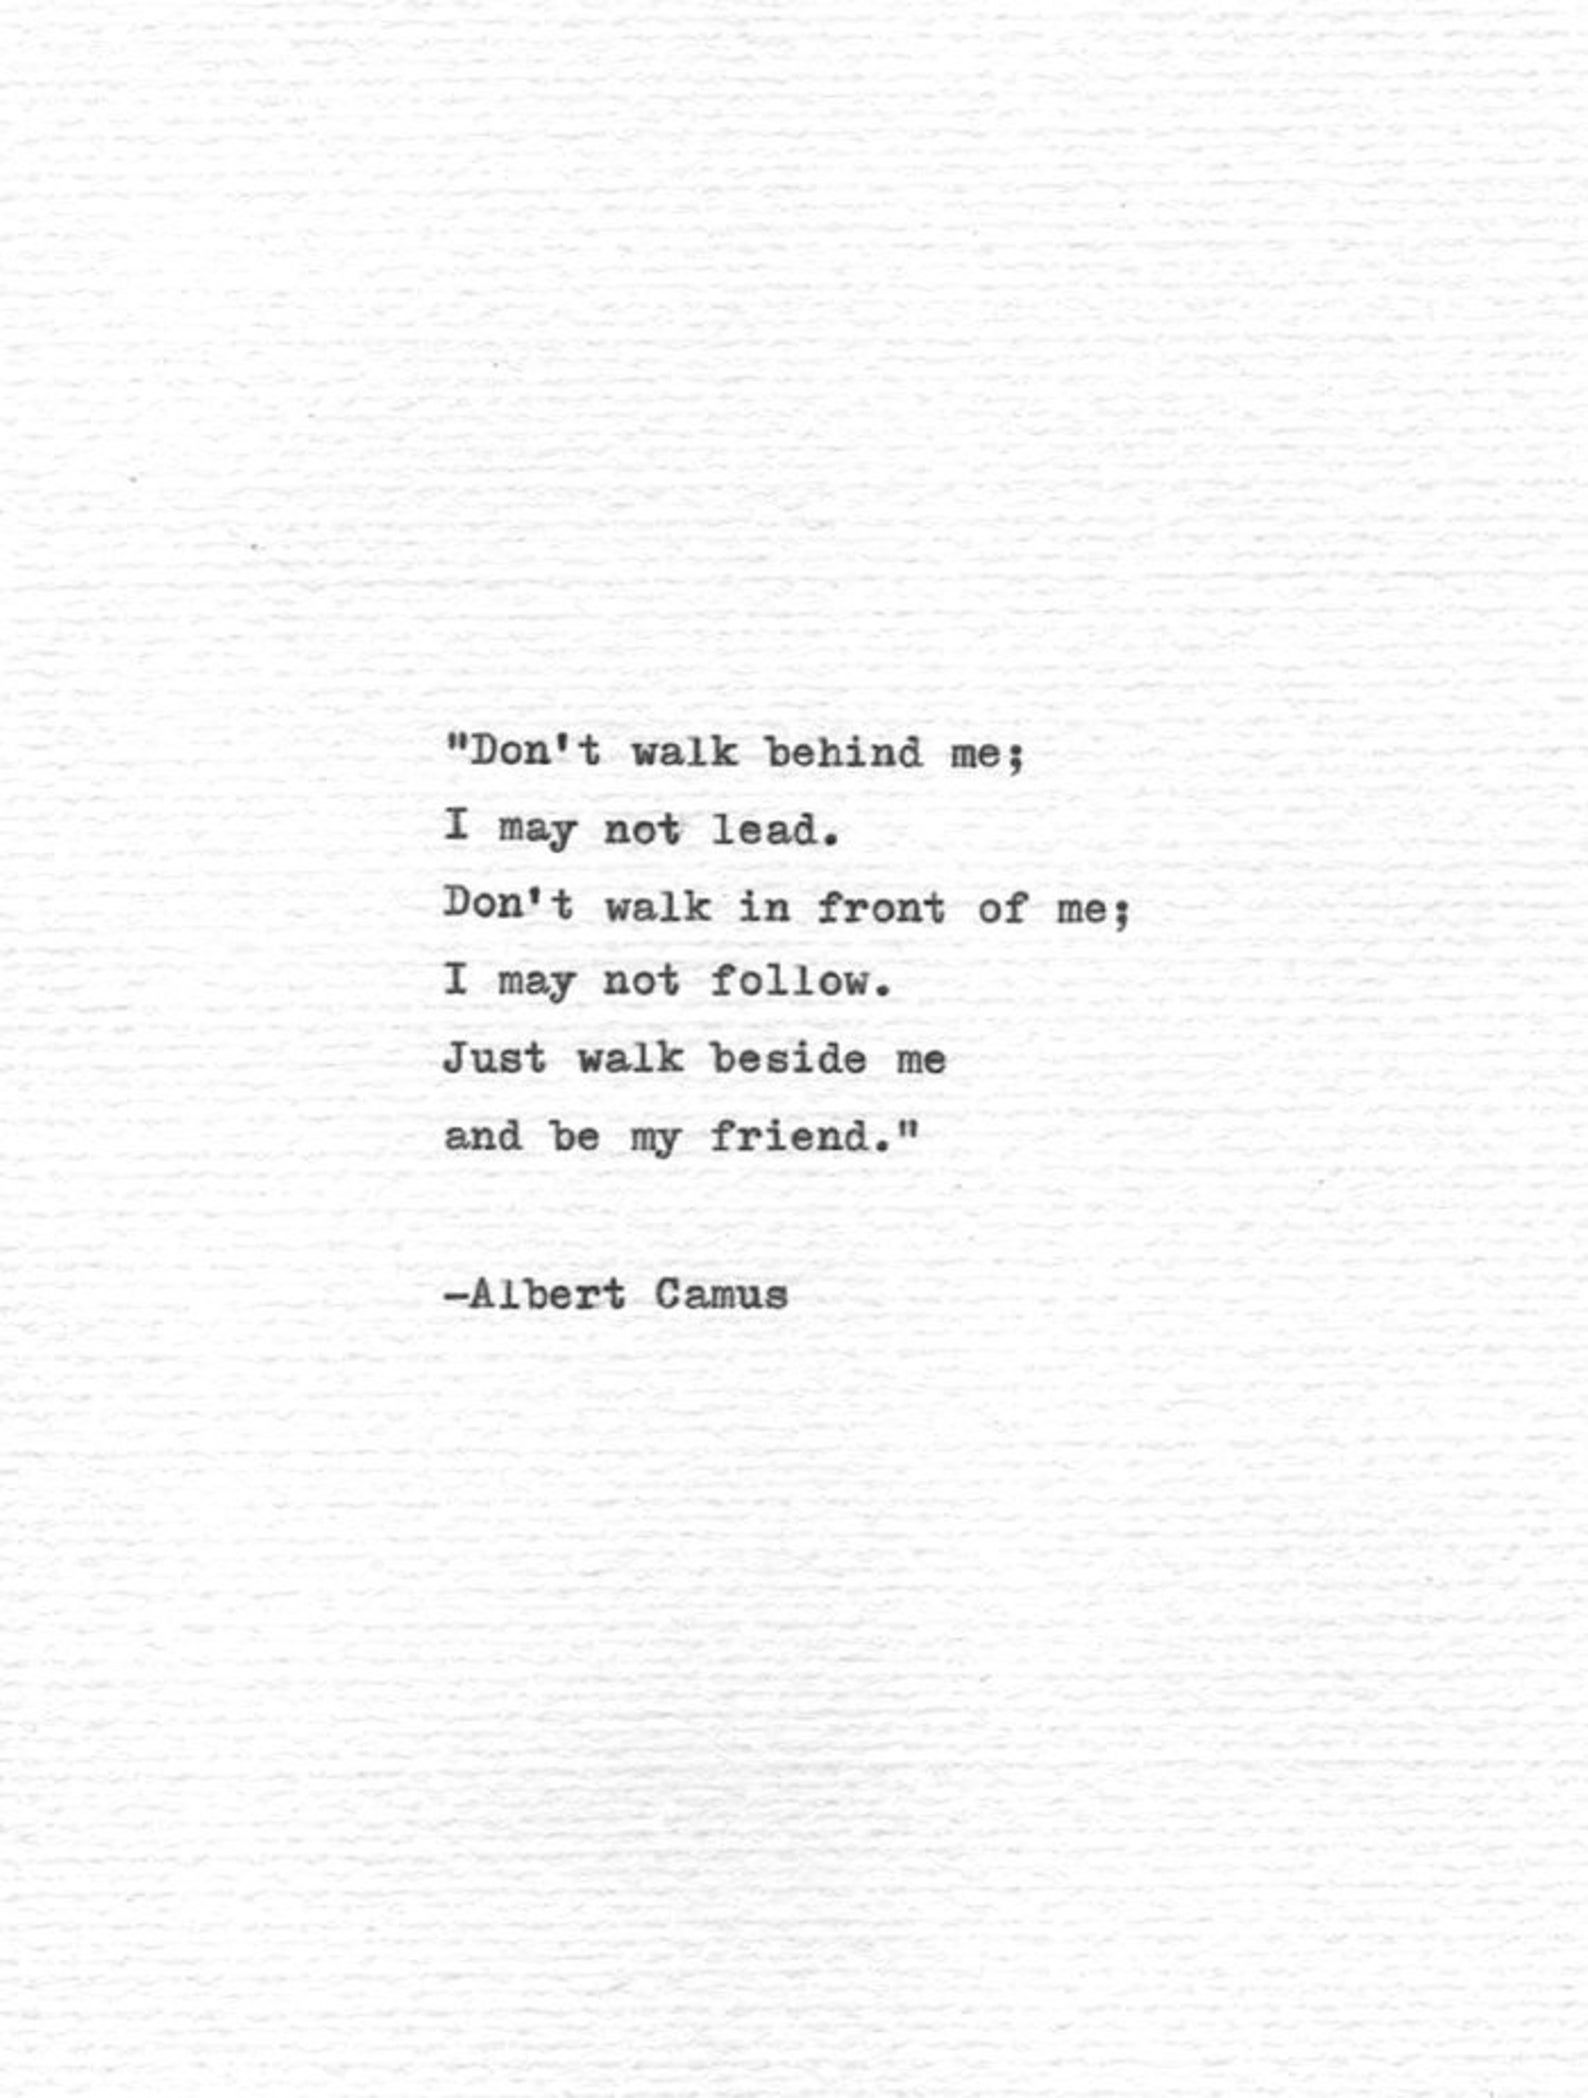 Albert Camus Hand Typed Quote Be my friend Vintage Typewriter Letterpress Print Friendship Gift Writer Inspiration Book Print Absurdism